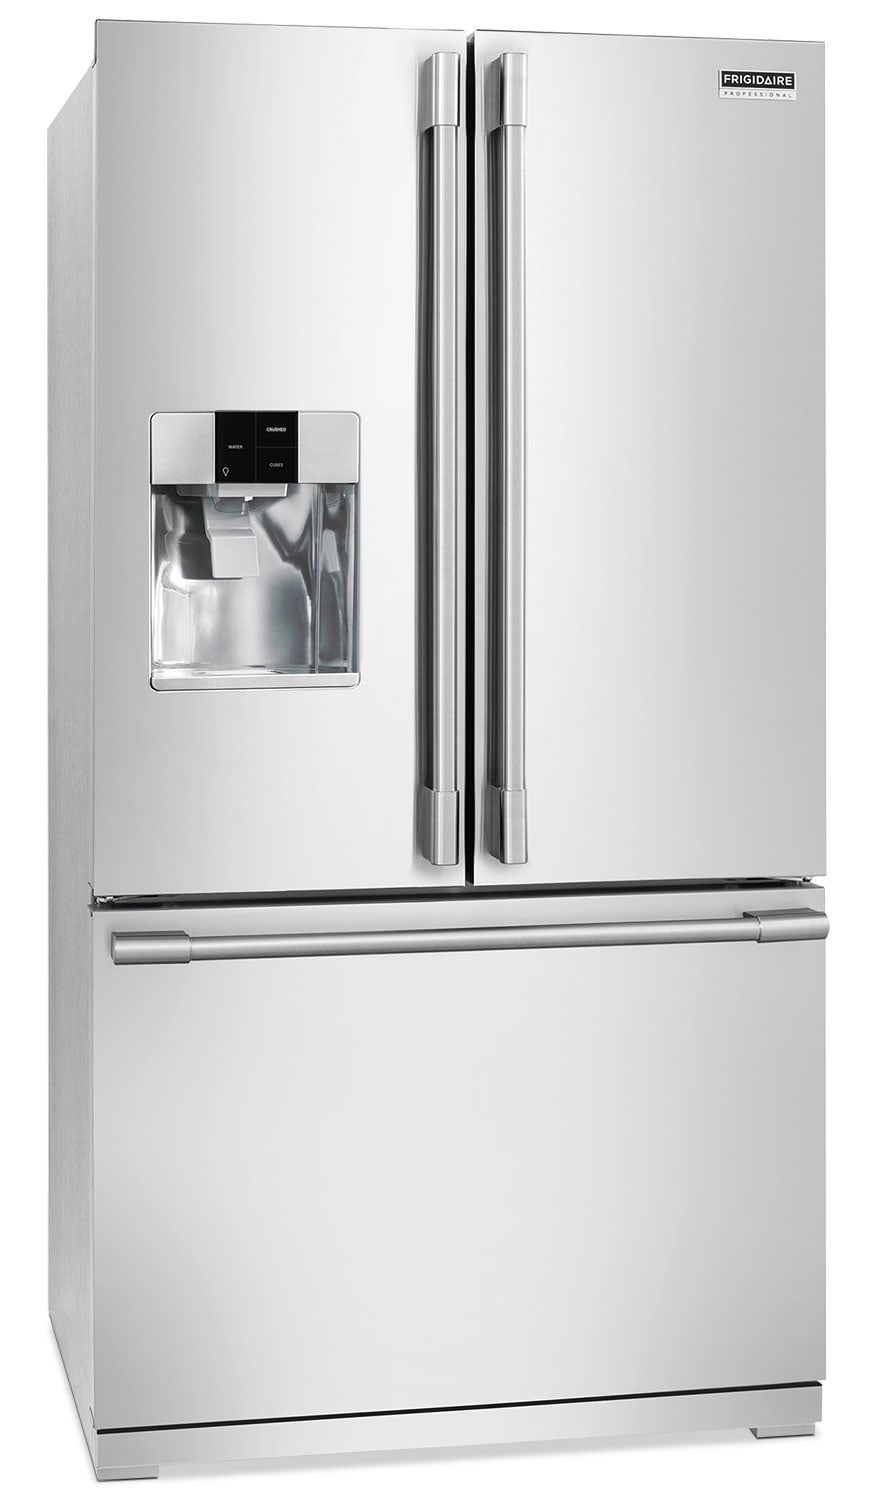 Frigidaire Professional Stainless Steel French Door Refrigerator (27.8 Cu. Ft.) - FPBS2777RF